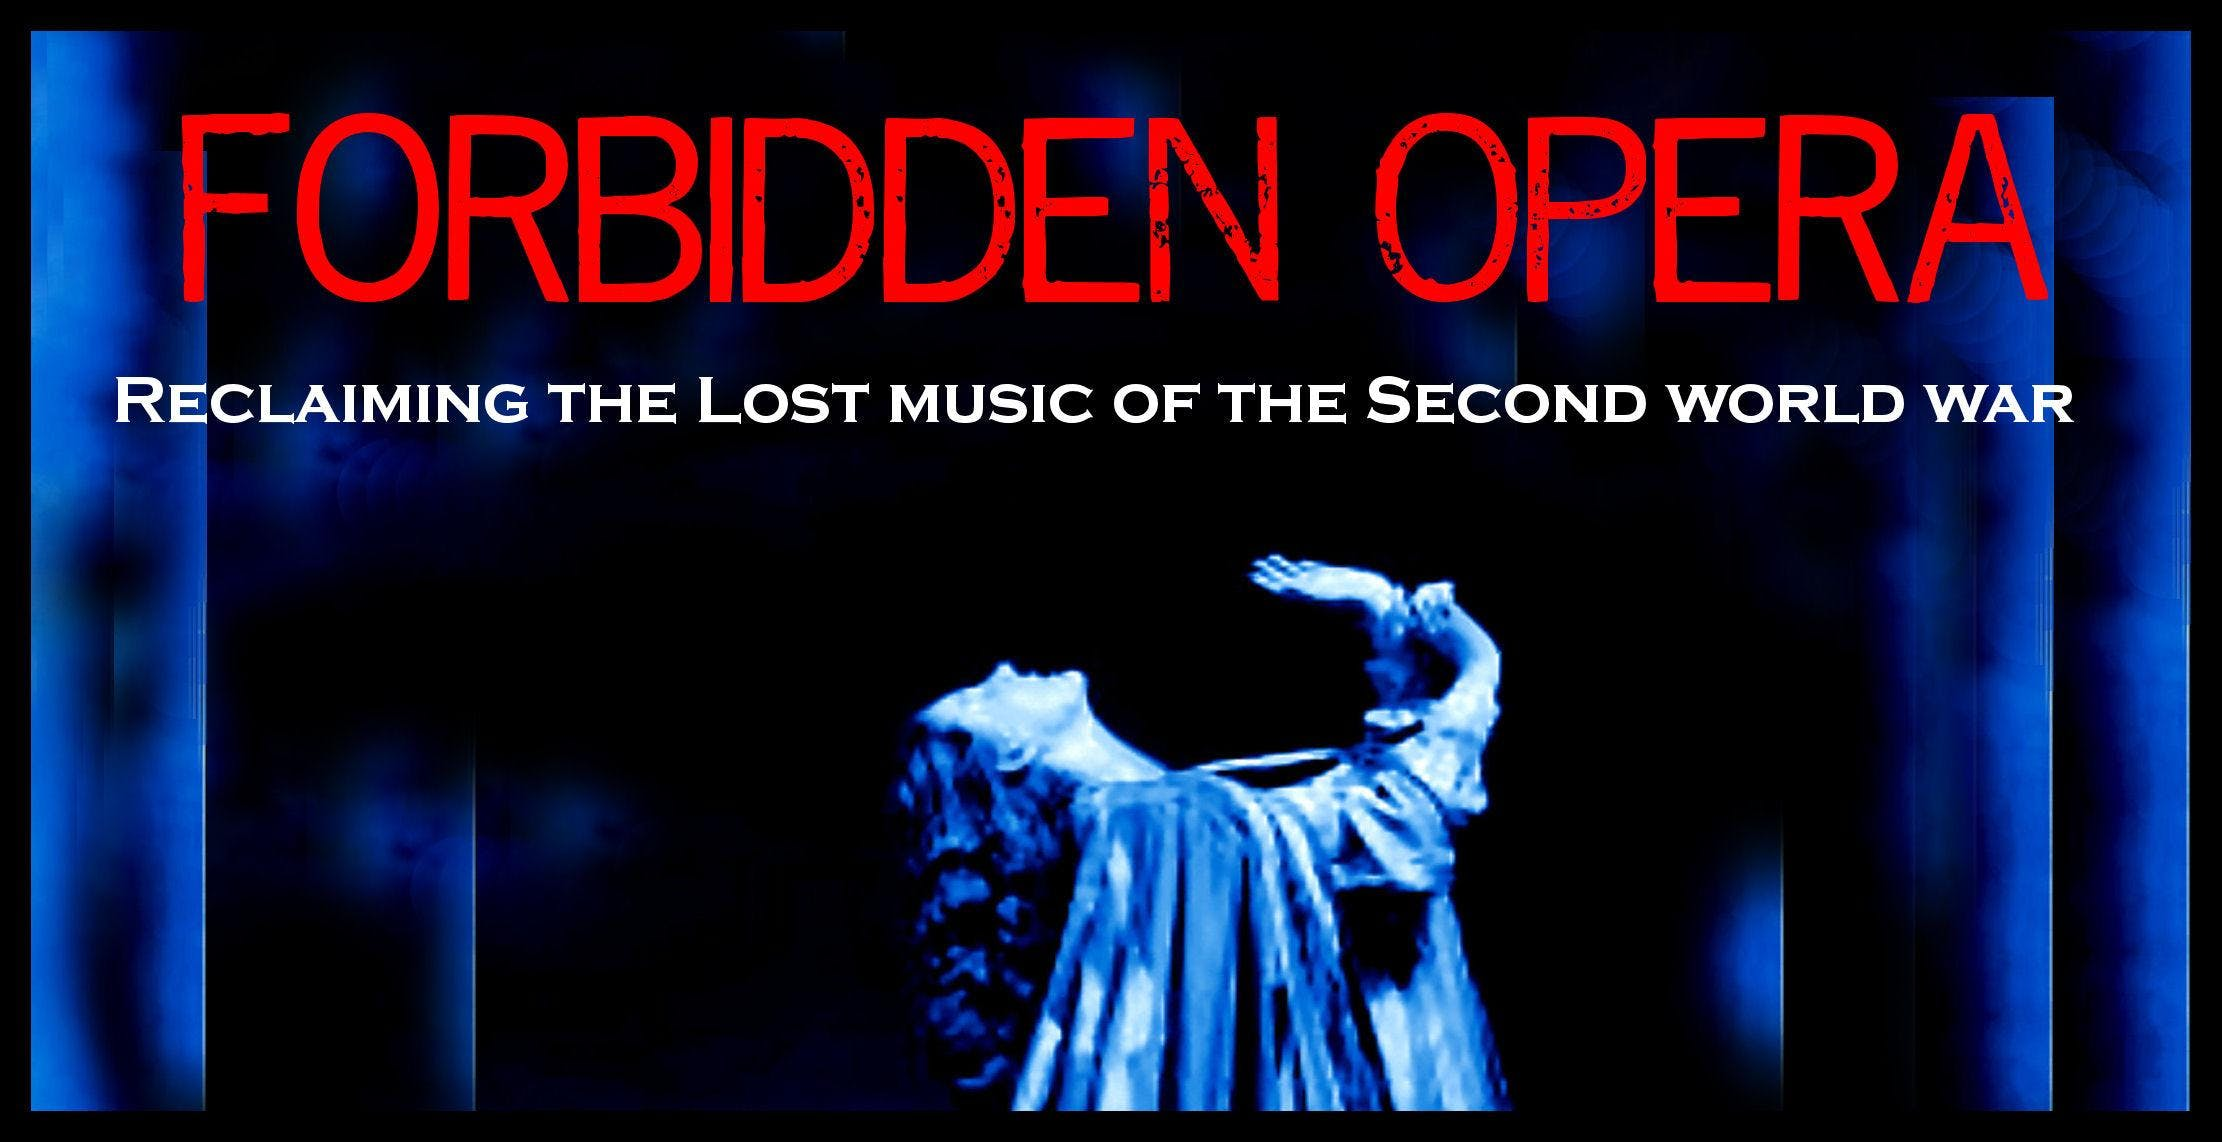 FORBIDDEN OPERA: Reclaiming the lost Music of